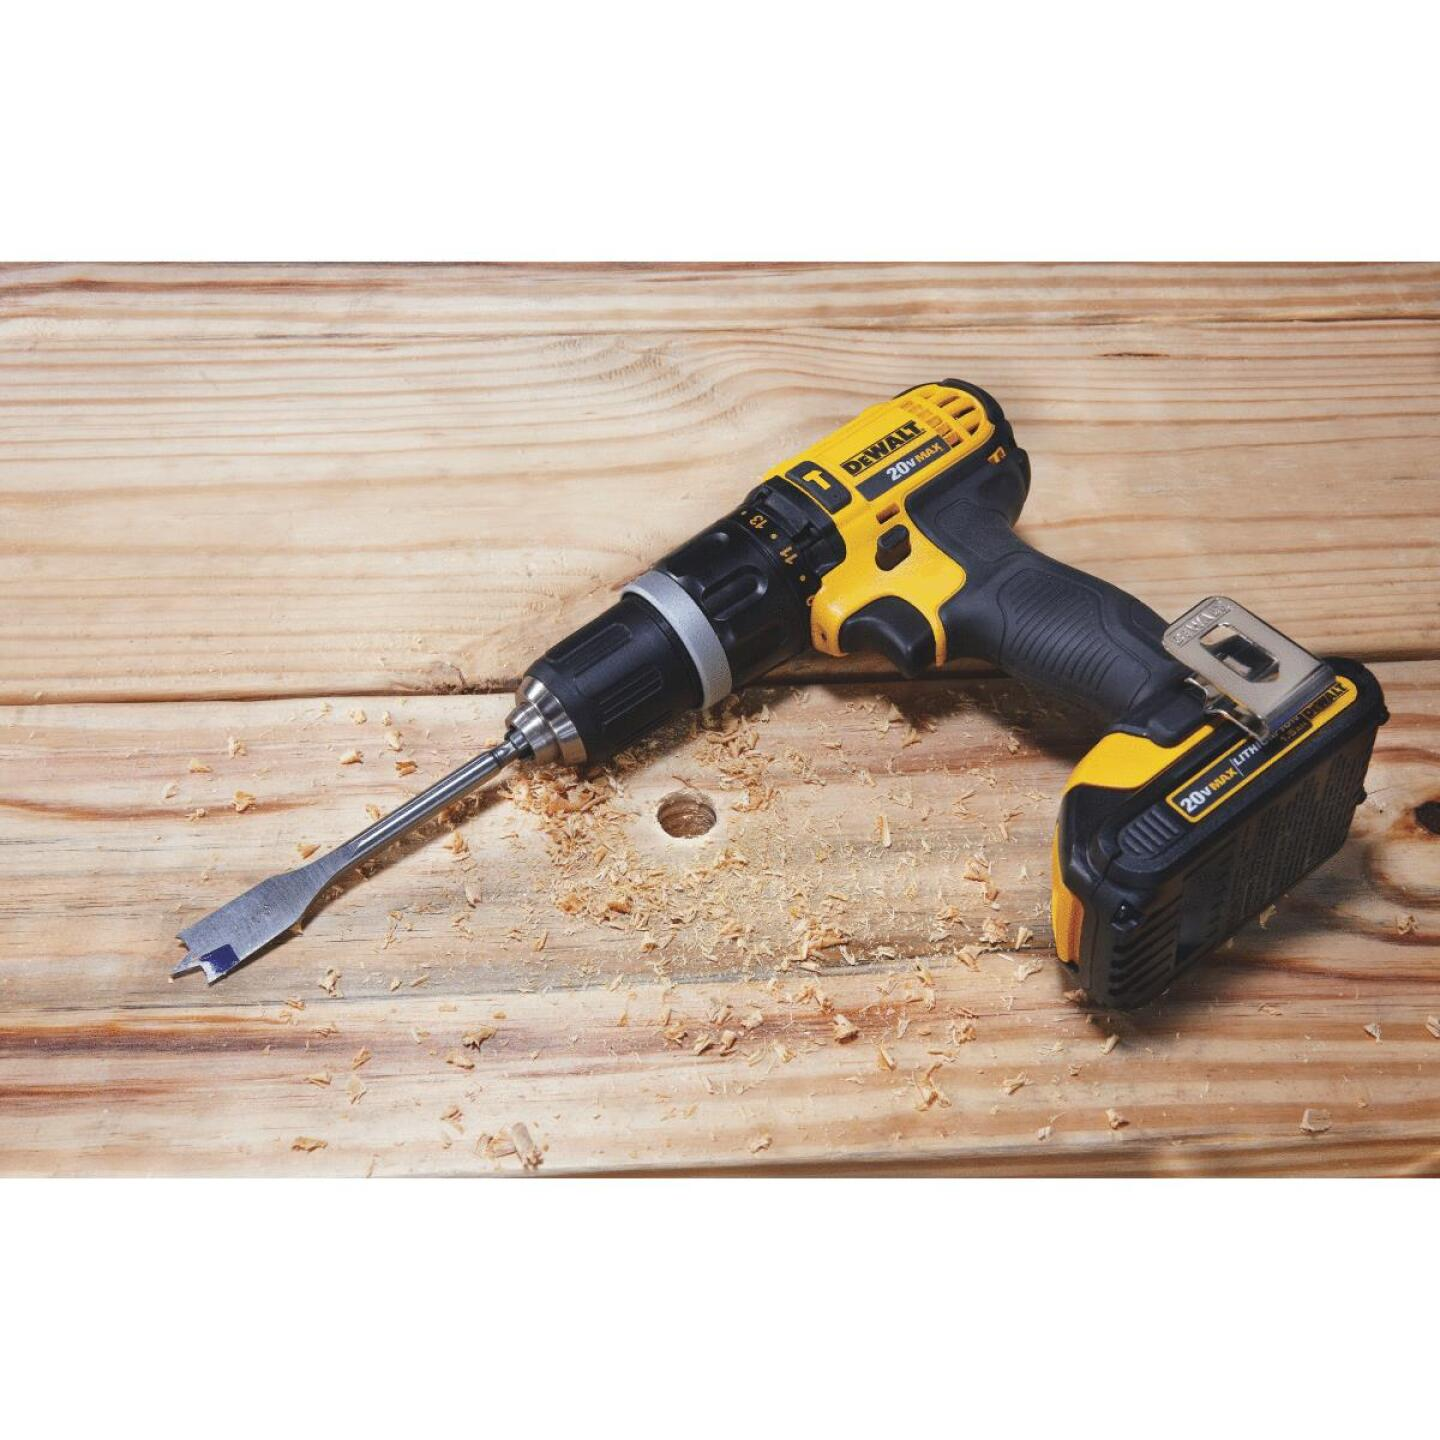 DeWalt 20 Volt MAX Lithium-Ion 1/2 In. Compact Cordless Hammer Drill Kit Image 3